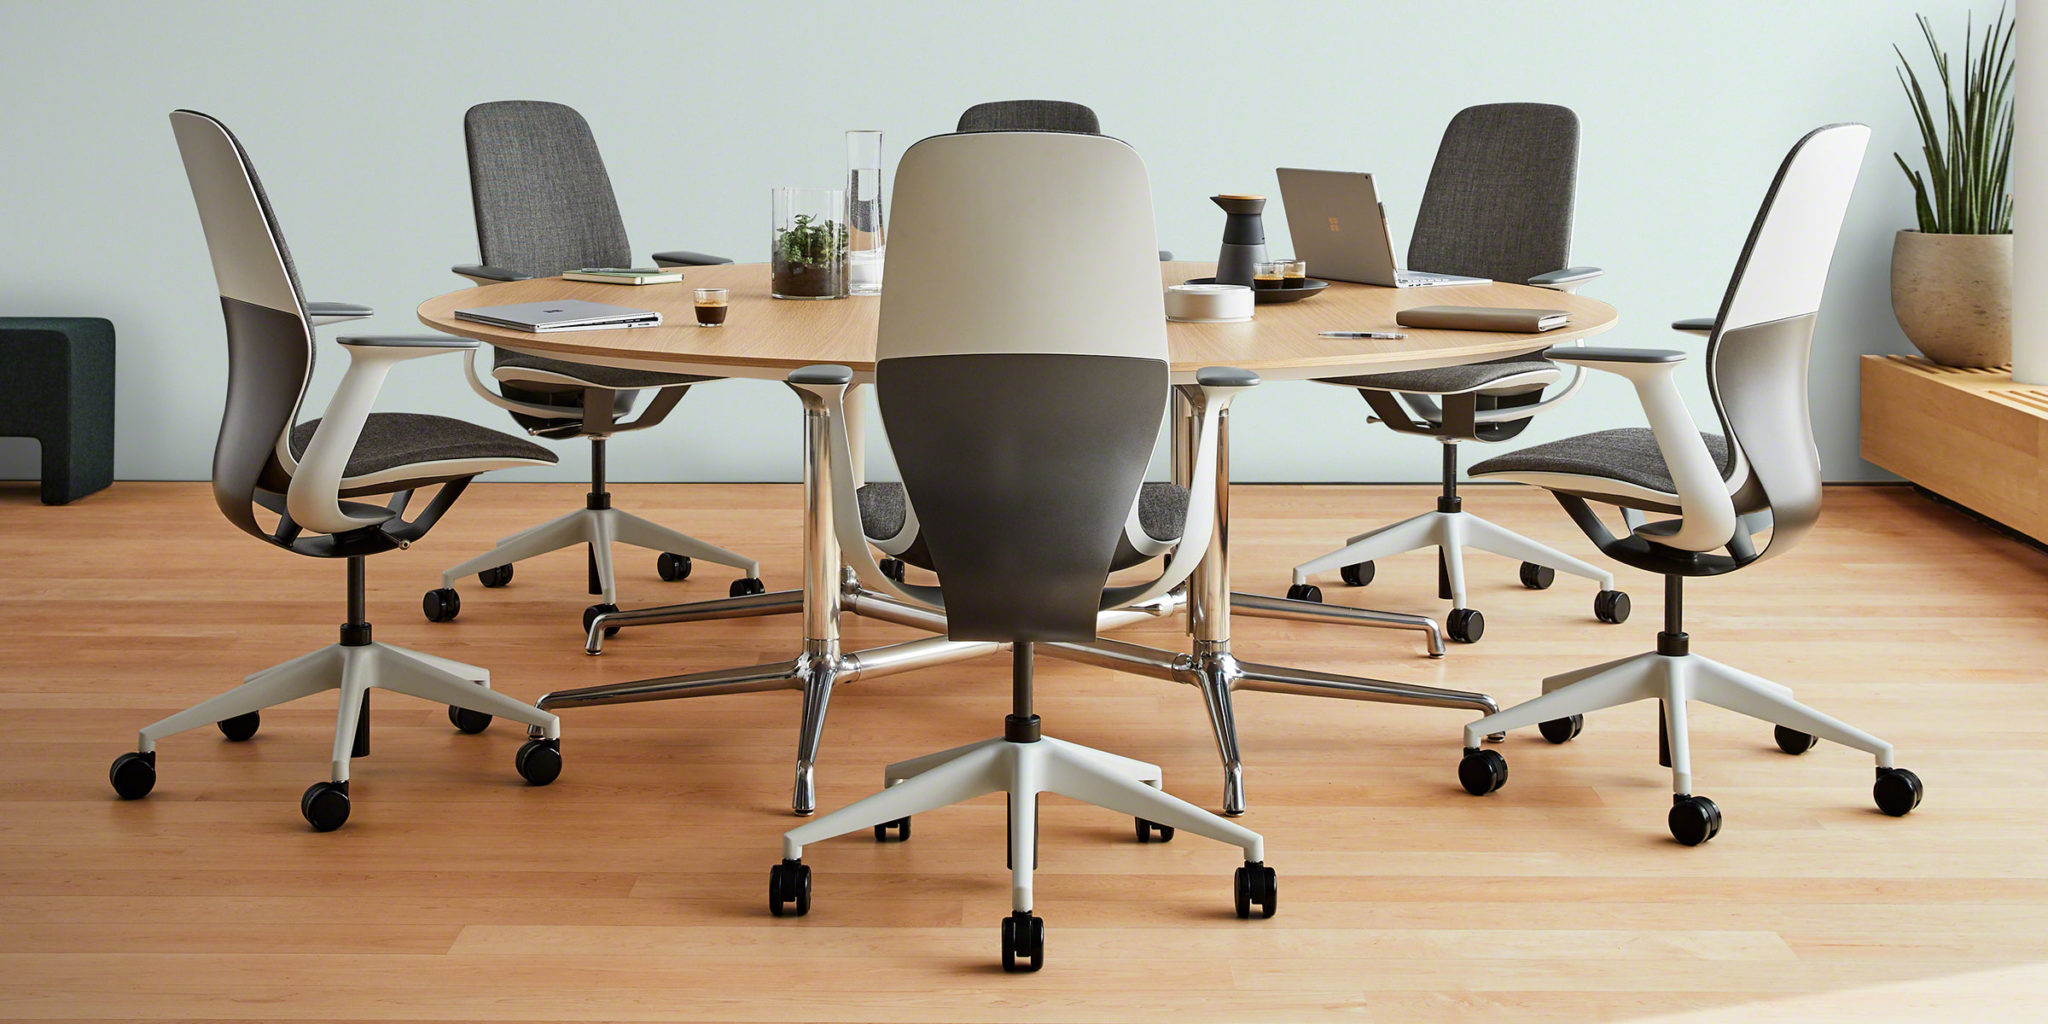 afd contract furniture corporate office furniture ny rh afd inc com